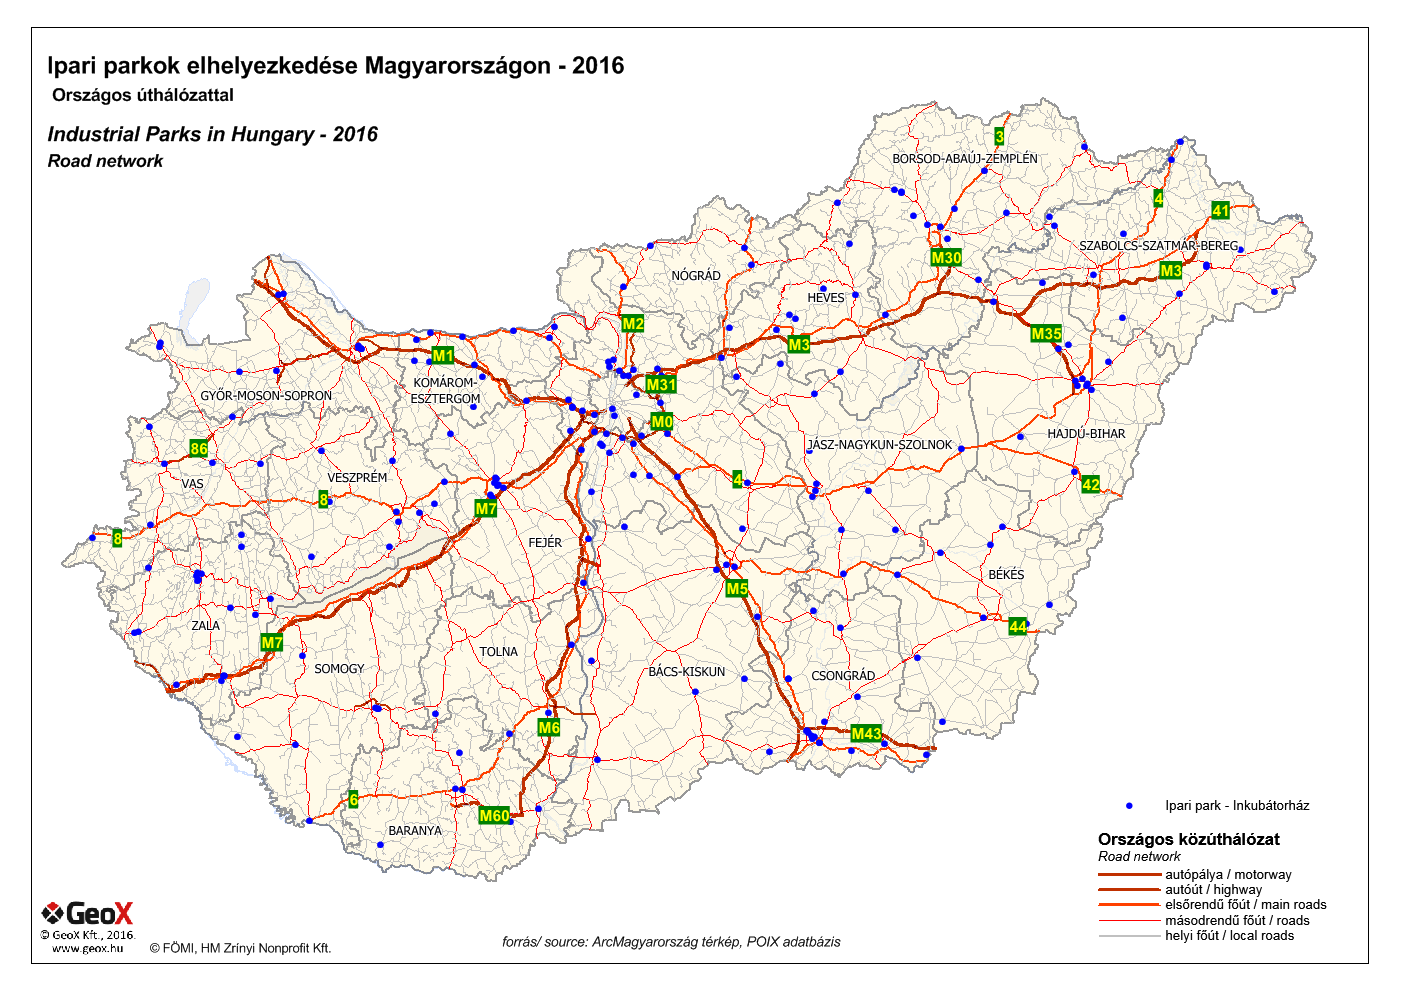 POIX database - Industrial zones in Hungary - 2016